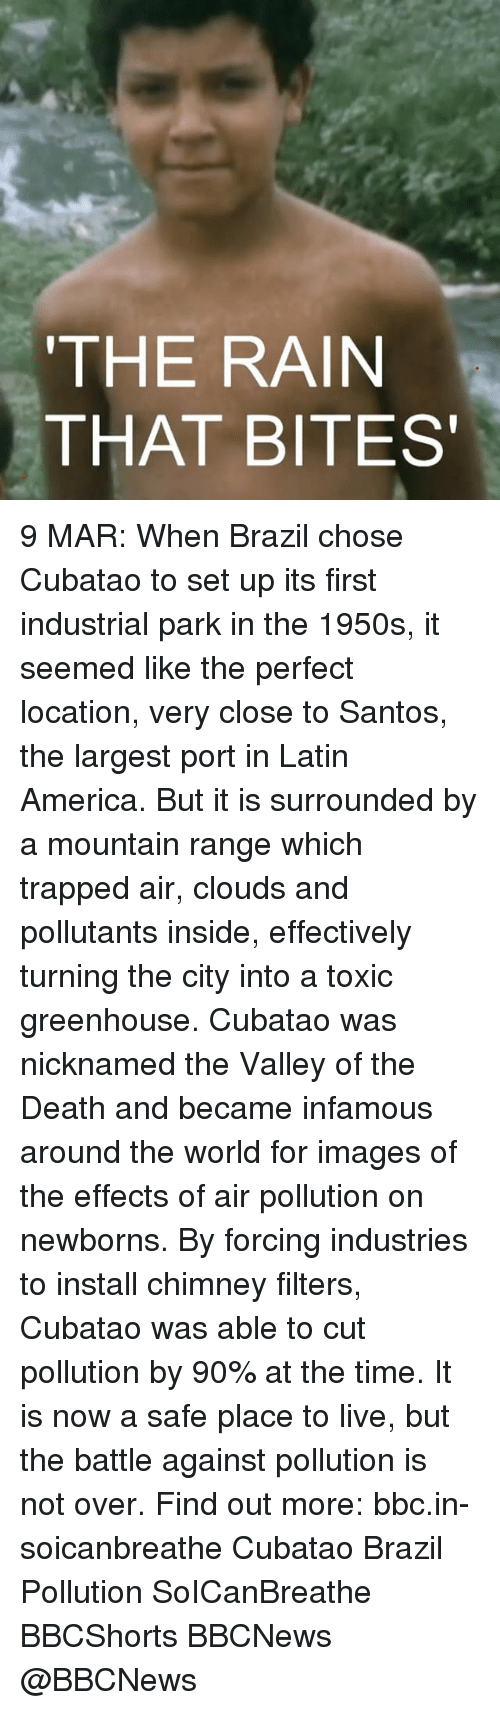 Memes, Brazil, and 🤖: THE RAIN  THAT BITES 9 MAR: When Brazil chose Cubatao to set up its first industrial park in the 1950s, it seemed like the perfect location, very close to Santos, the largest port in Latin America. But it is surrounded by a mountain range which trapped air, clouds and pollutants inside, effectively turning the city into a toxic greenhouse. Cubatao was nicknamed the Valley of the Death and became infamous around the world for images of the effects of air pollution on newborns. By forcing industries to install chimney filters, Cubatao was able to cut pollution by 90% at the time. It is now a safe place to live, but the battle against pollution is not over. Find out more: bbc.in-soicanbreathe Cubatao Brazil Pollution SoICanBreathe BBCShorts BBCNews @BBCNews